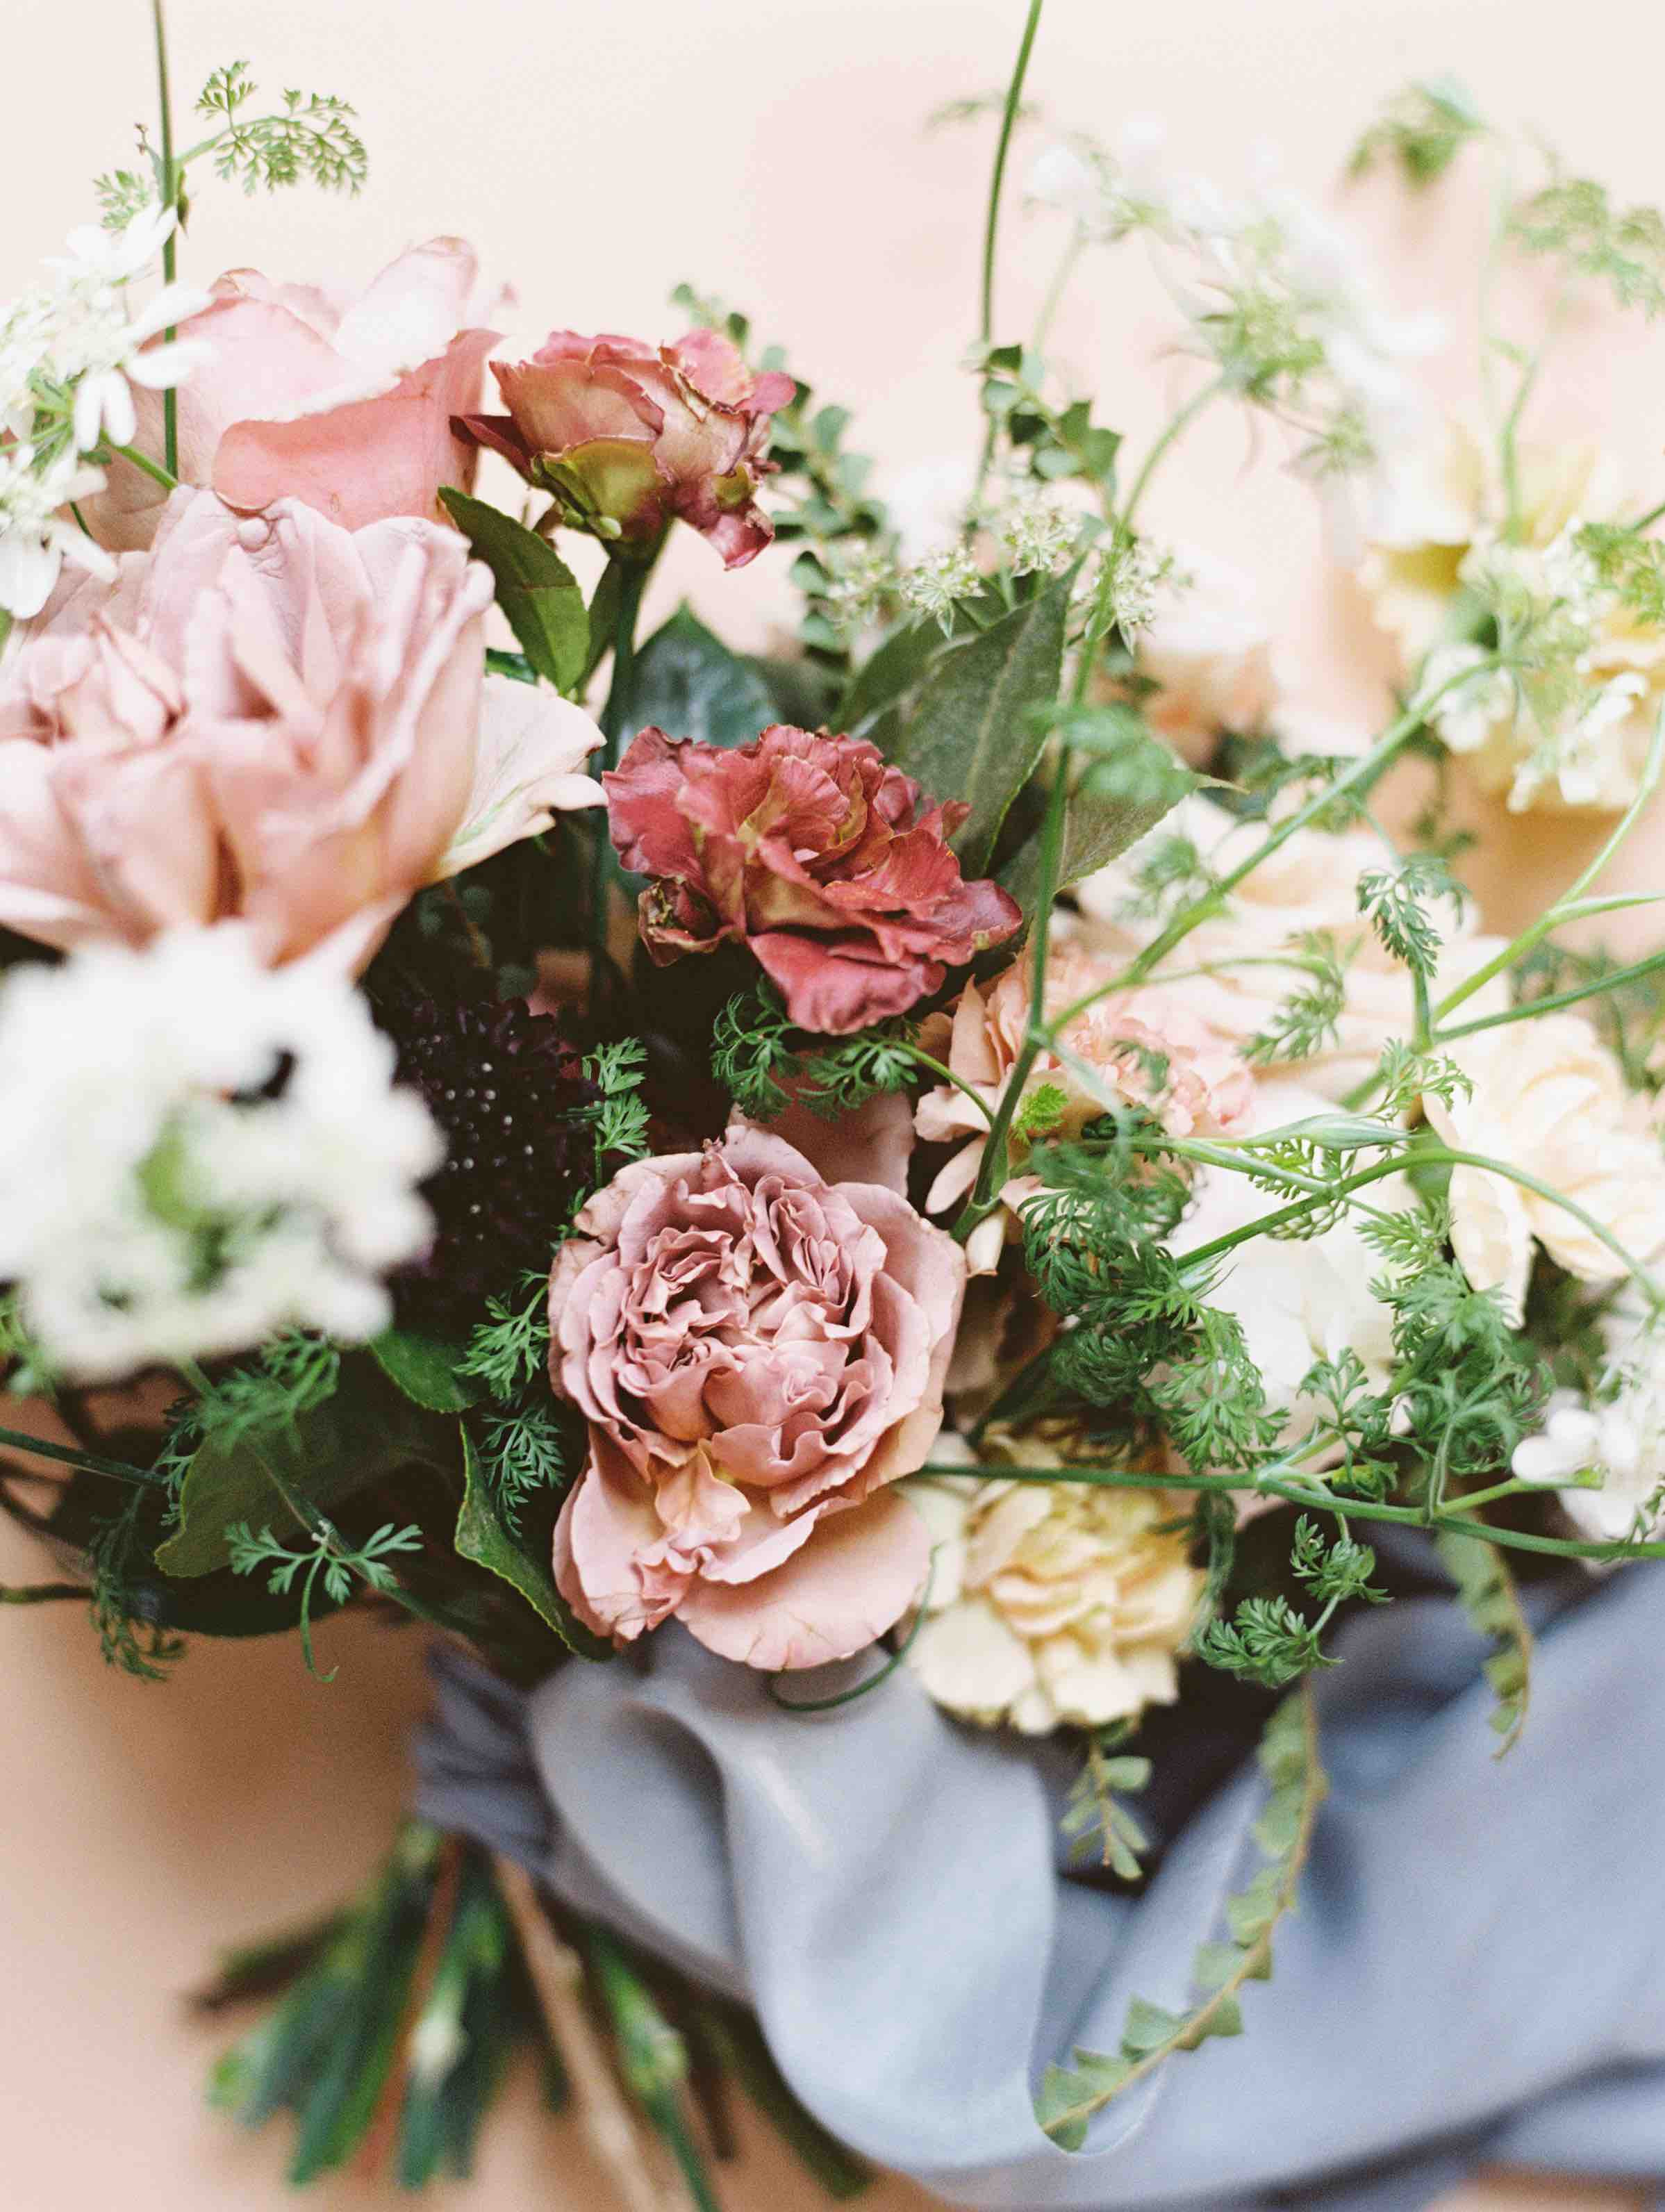 Nicole Clarey graphy and Mayesh Styled Shoot